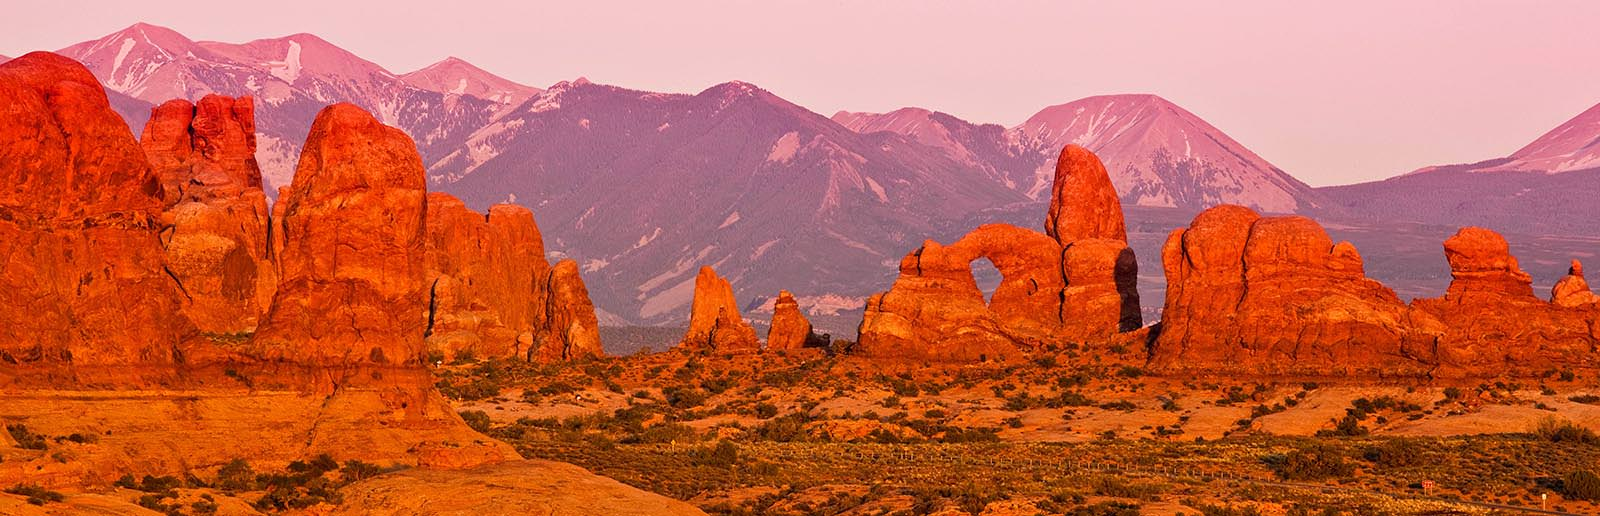 Arches National Park Bus Tour Moab Adventure Cente